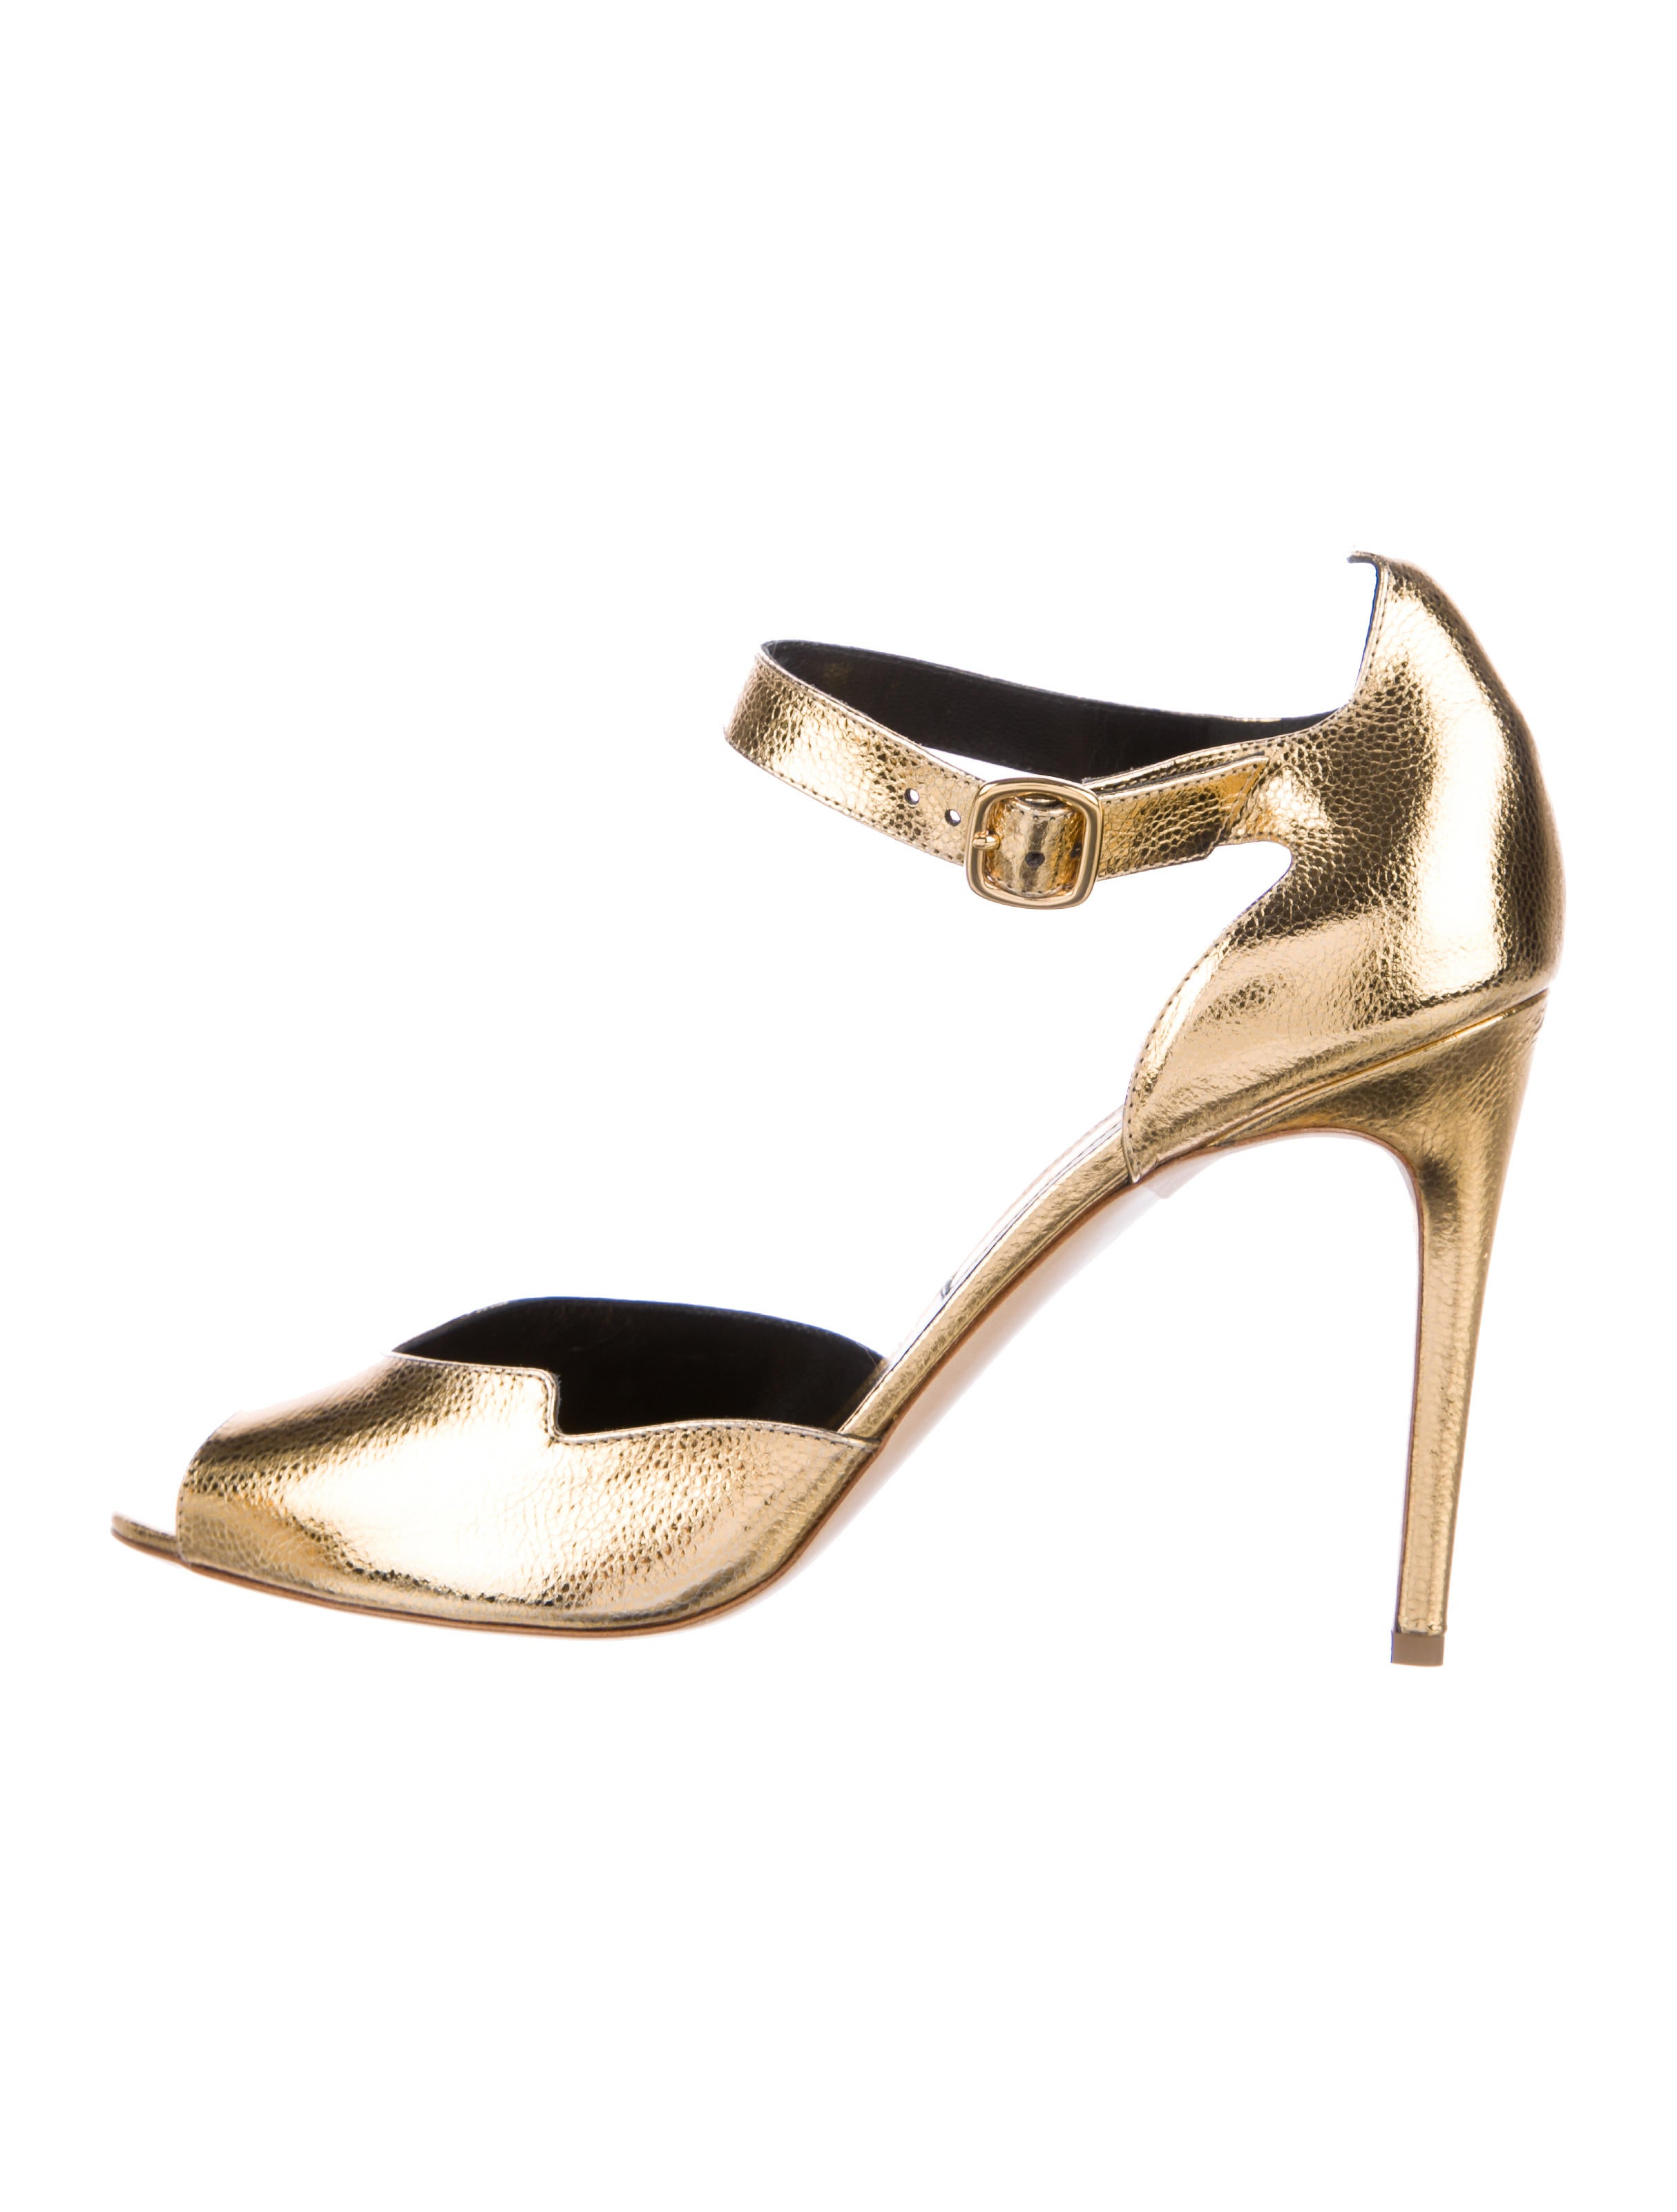 Rupert Sanderson Telita Metallic Pumps w/ Tags the cheapest cheap online buy cheap find great free shipping with credit card buy cheap price clearance amazing price GtKuY9BGC